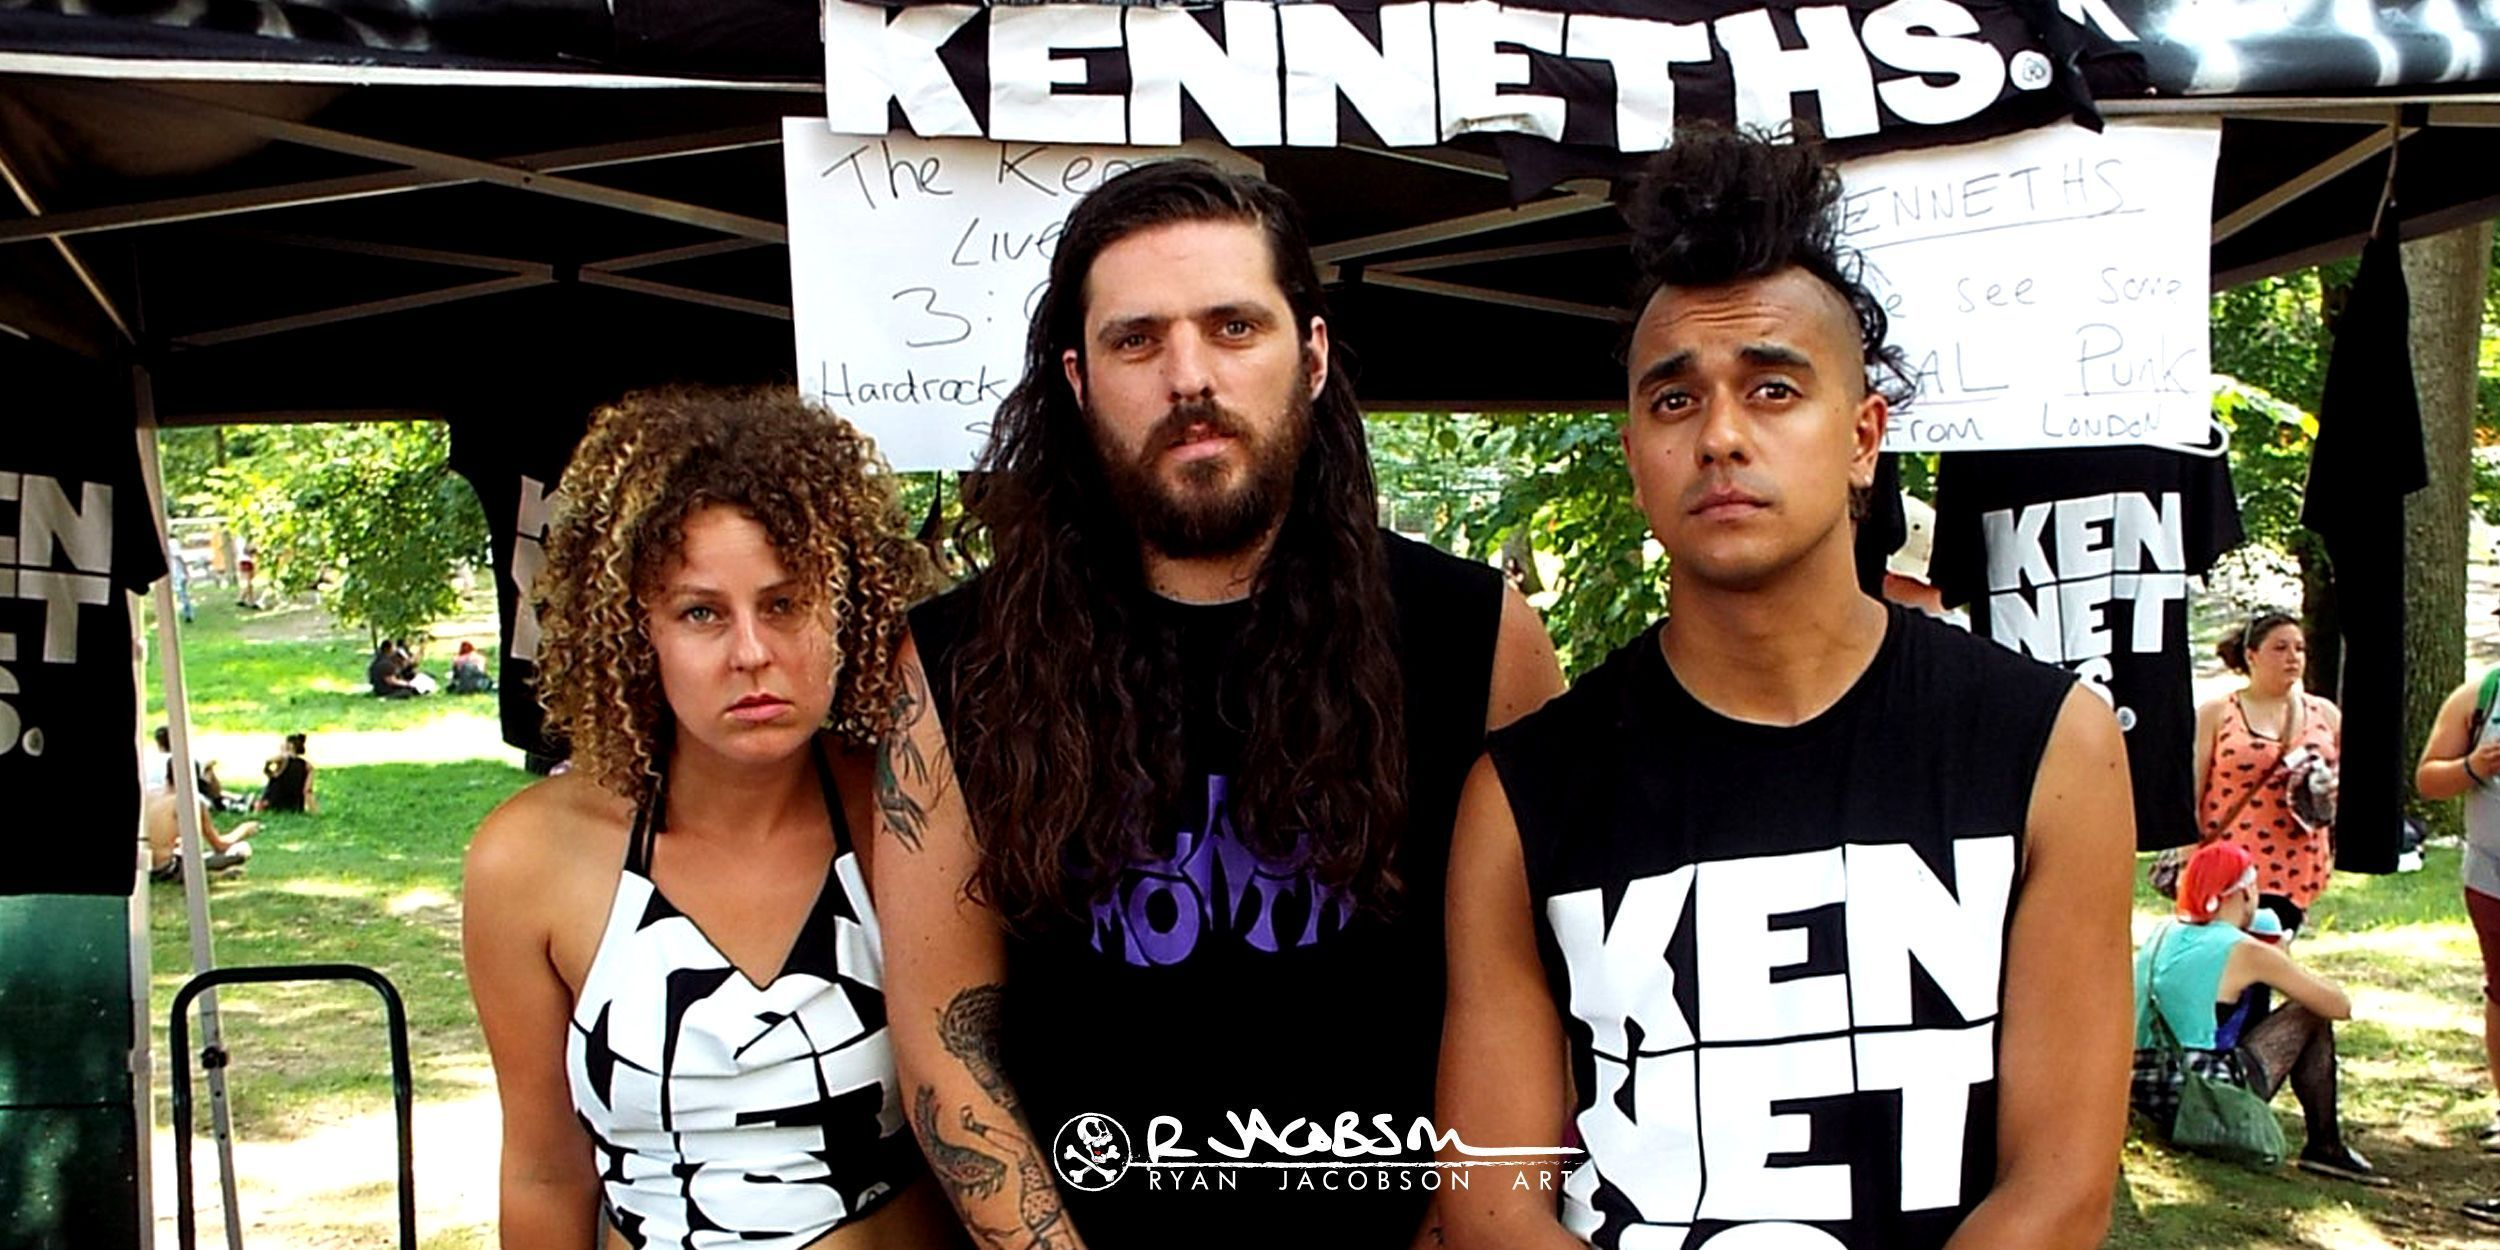 If You Have Been Missing The Ramones, You Need To Meet The Kenneths